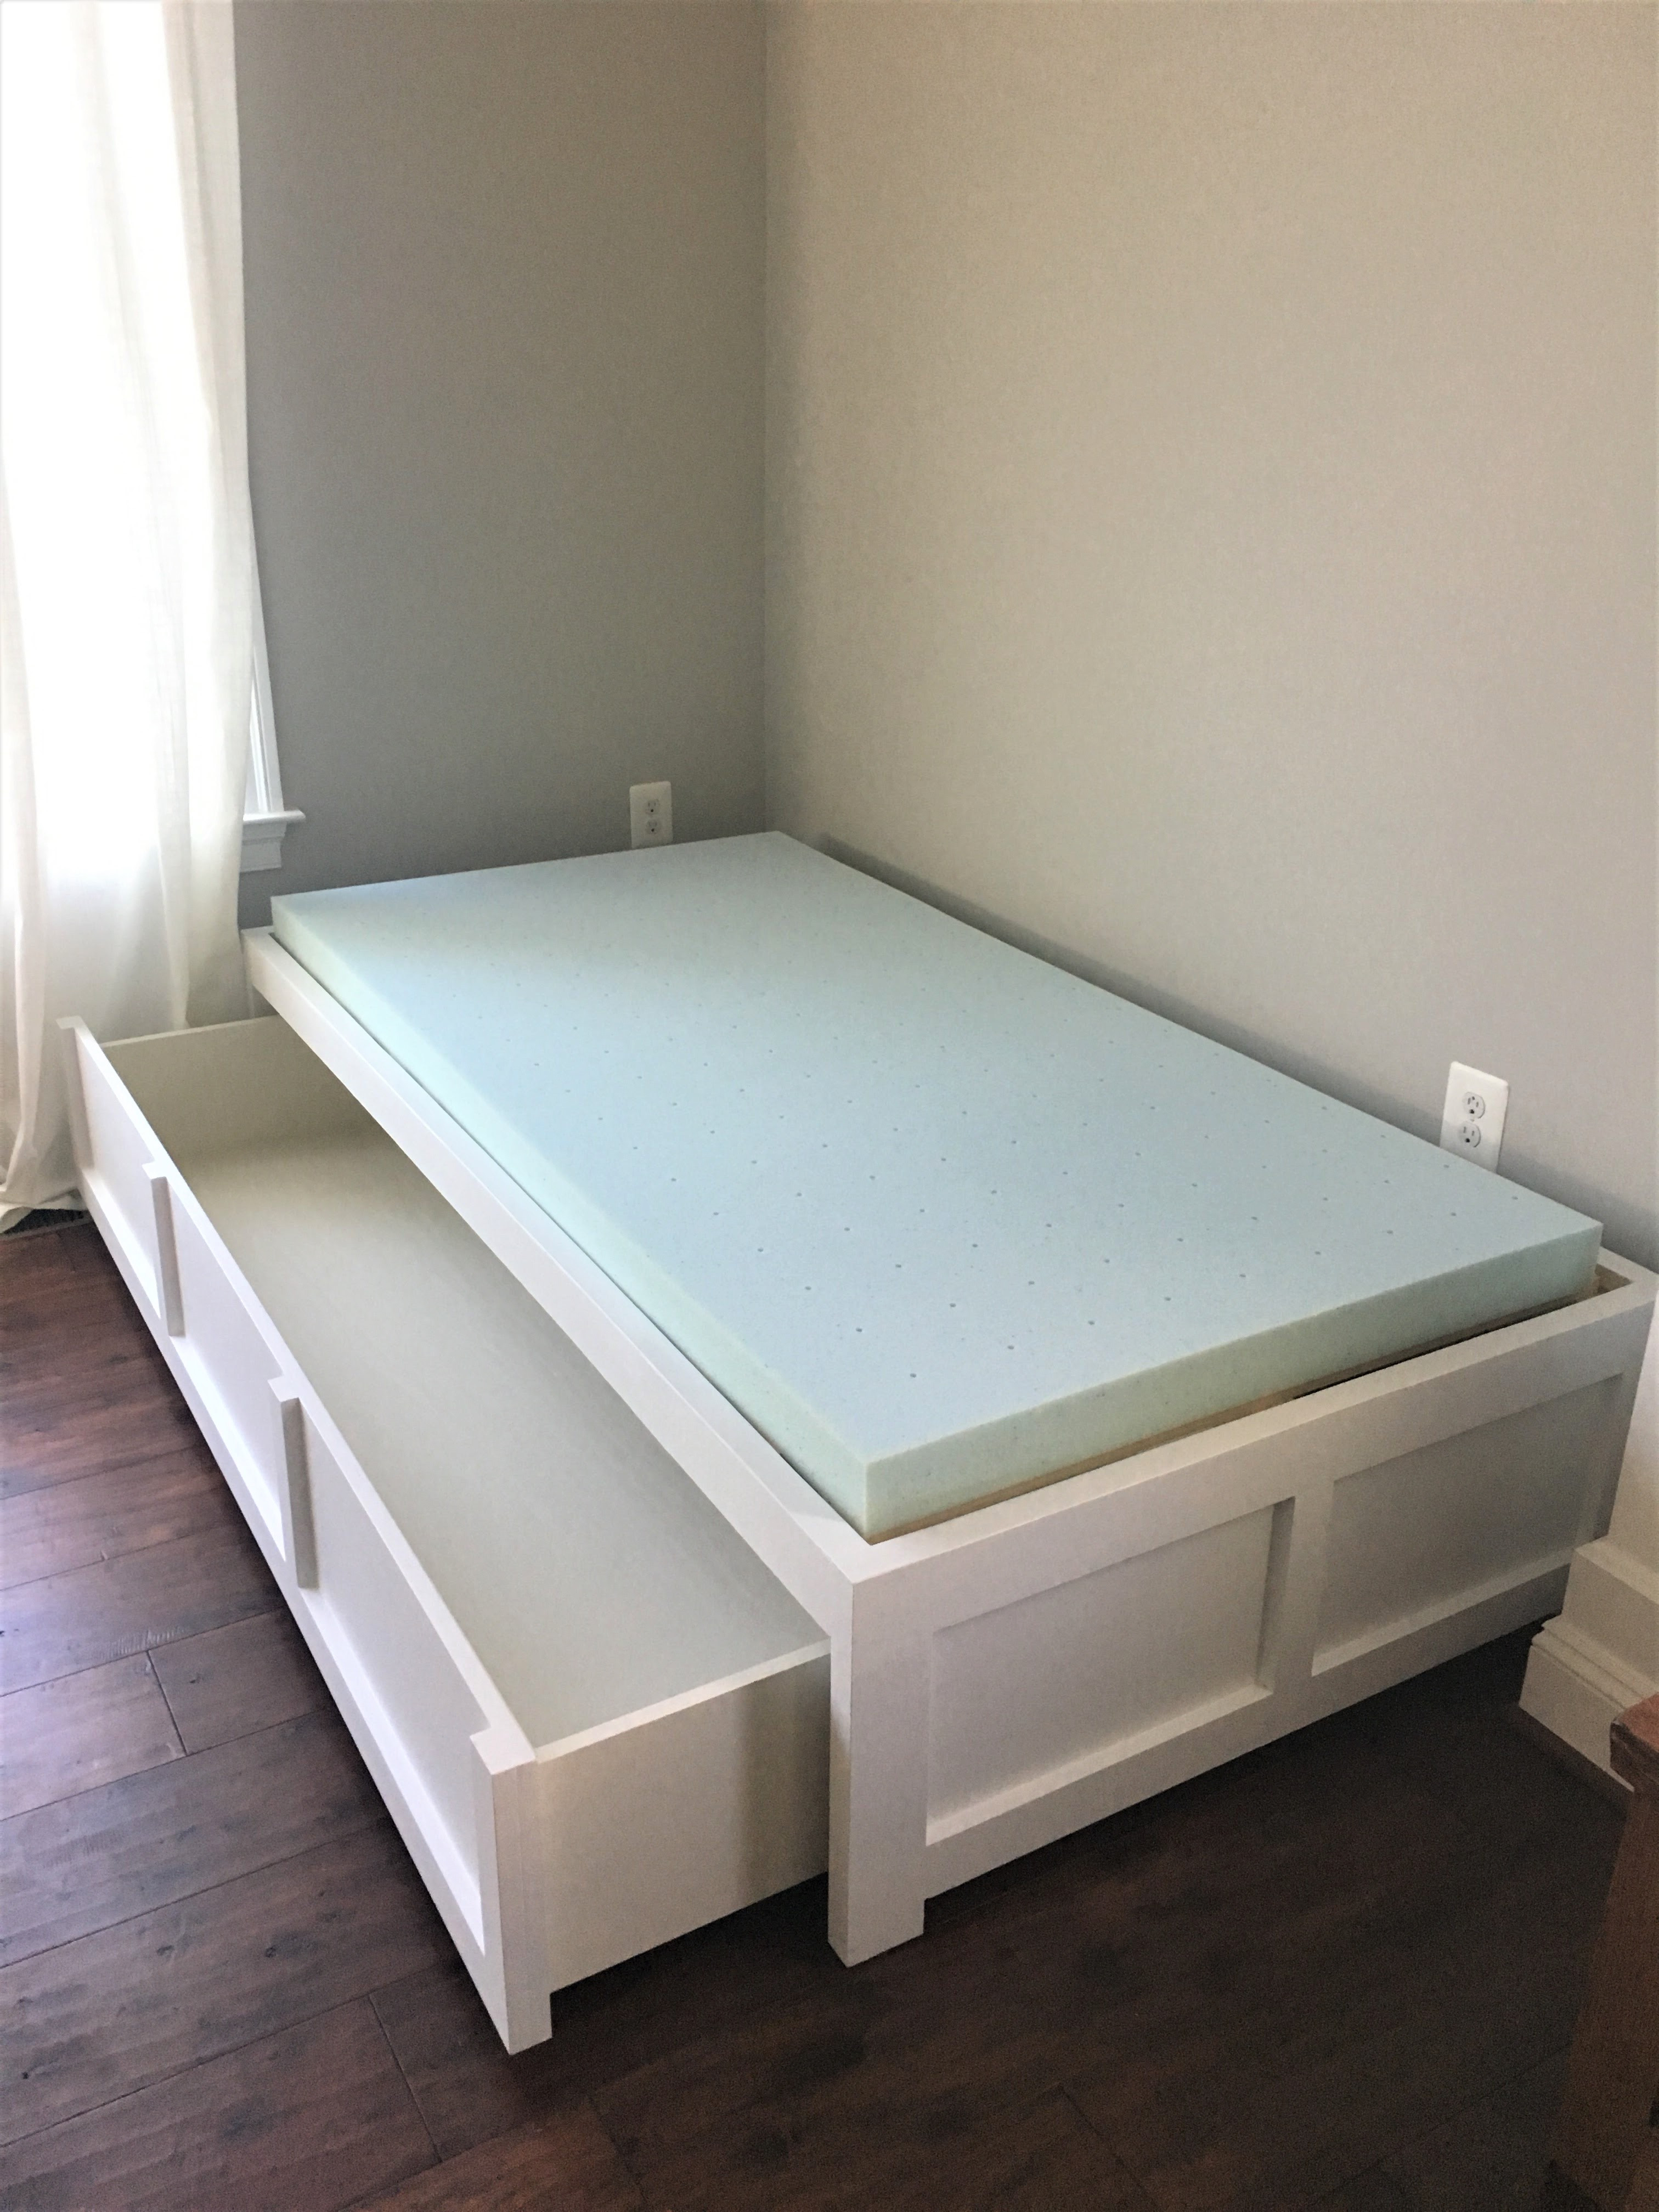 Best ideas about DIY Daybed Frame . Save or Pin Furniture Appealing Diy Daybed For Your Home Now.